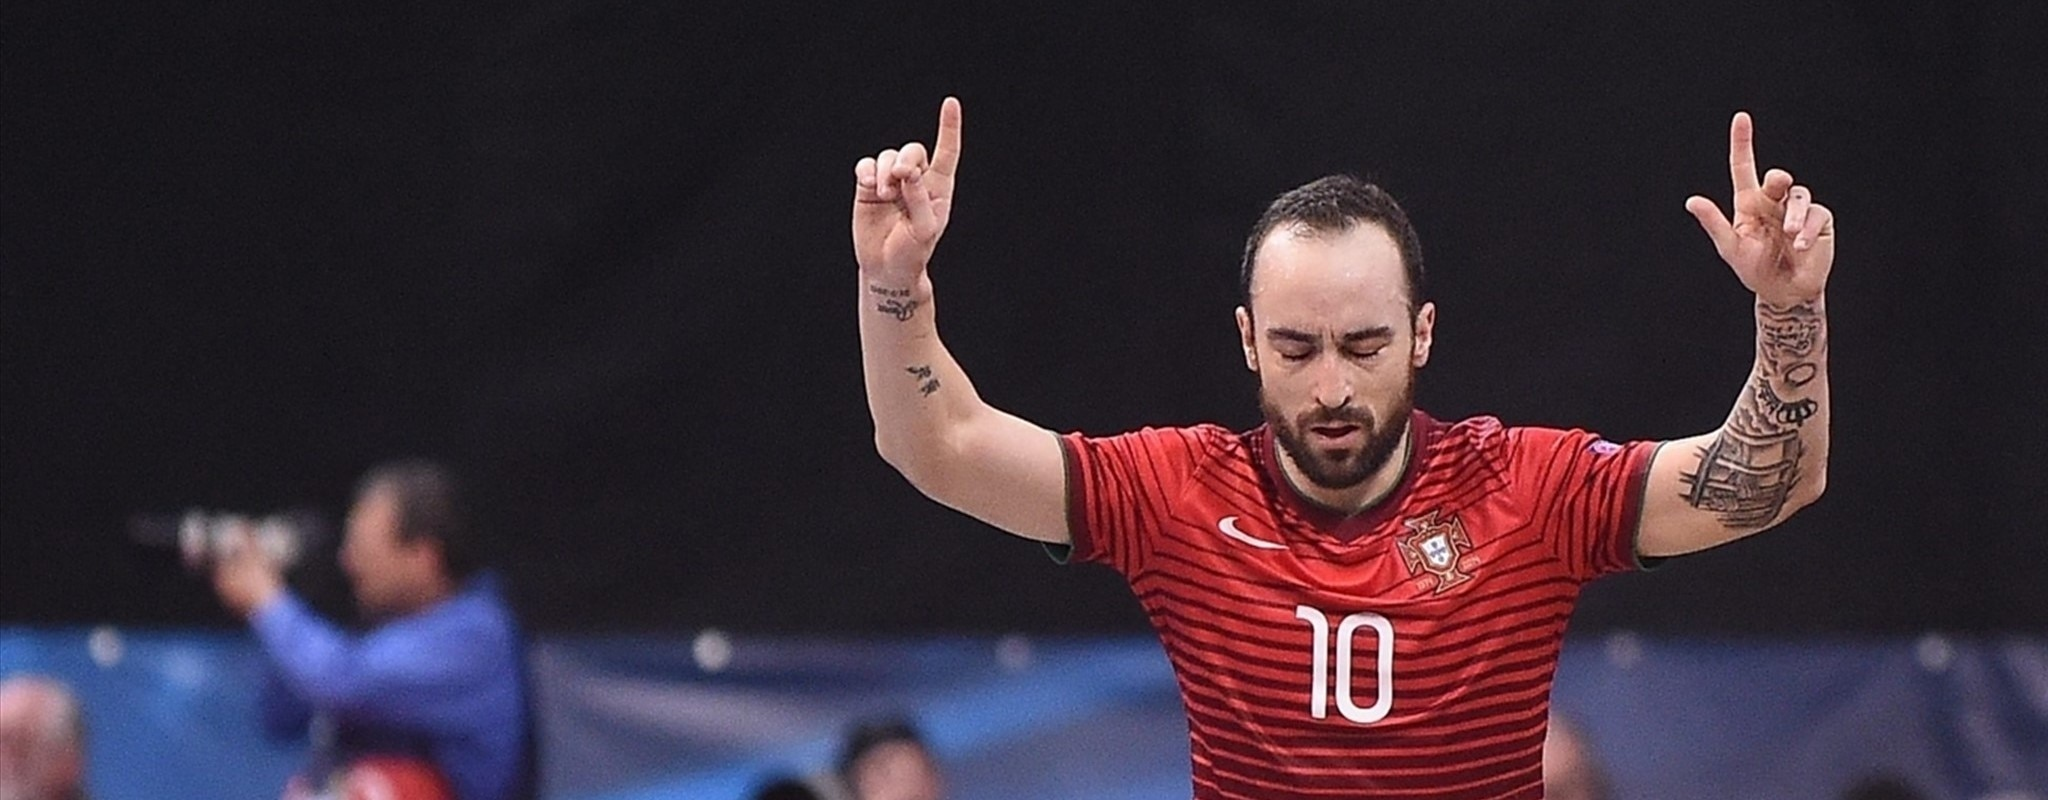 The best futsal player on the planet<br />